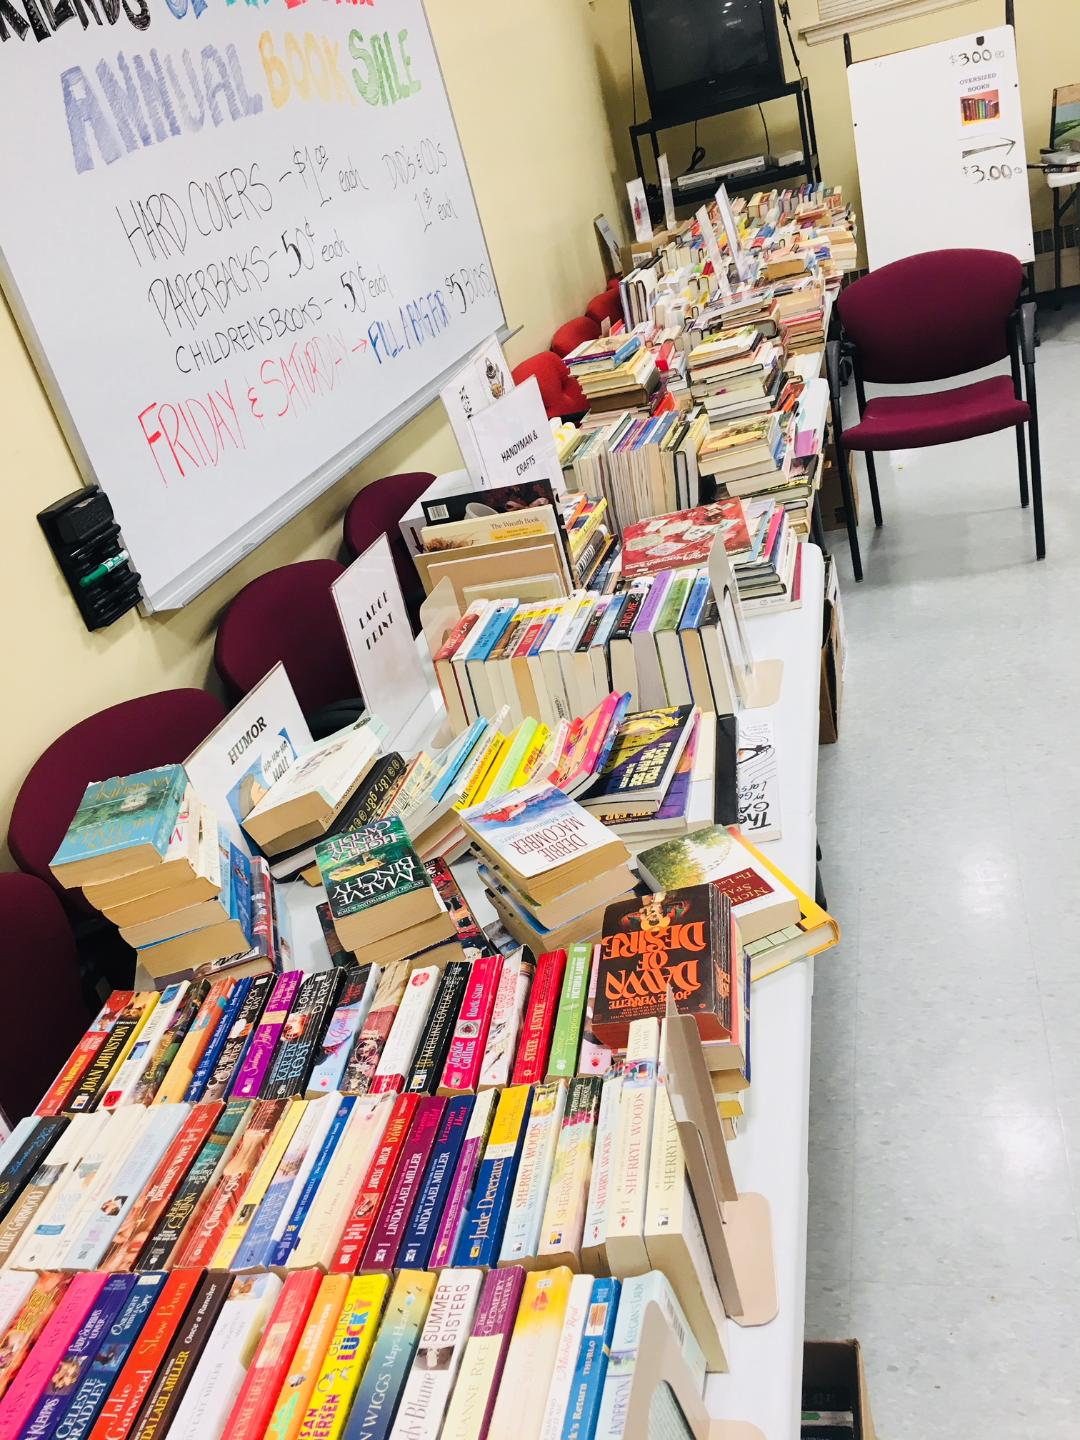 Friends of Jacob Edwards Library to Host Annual Booksale